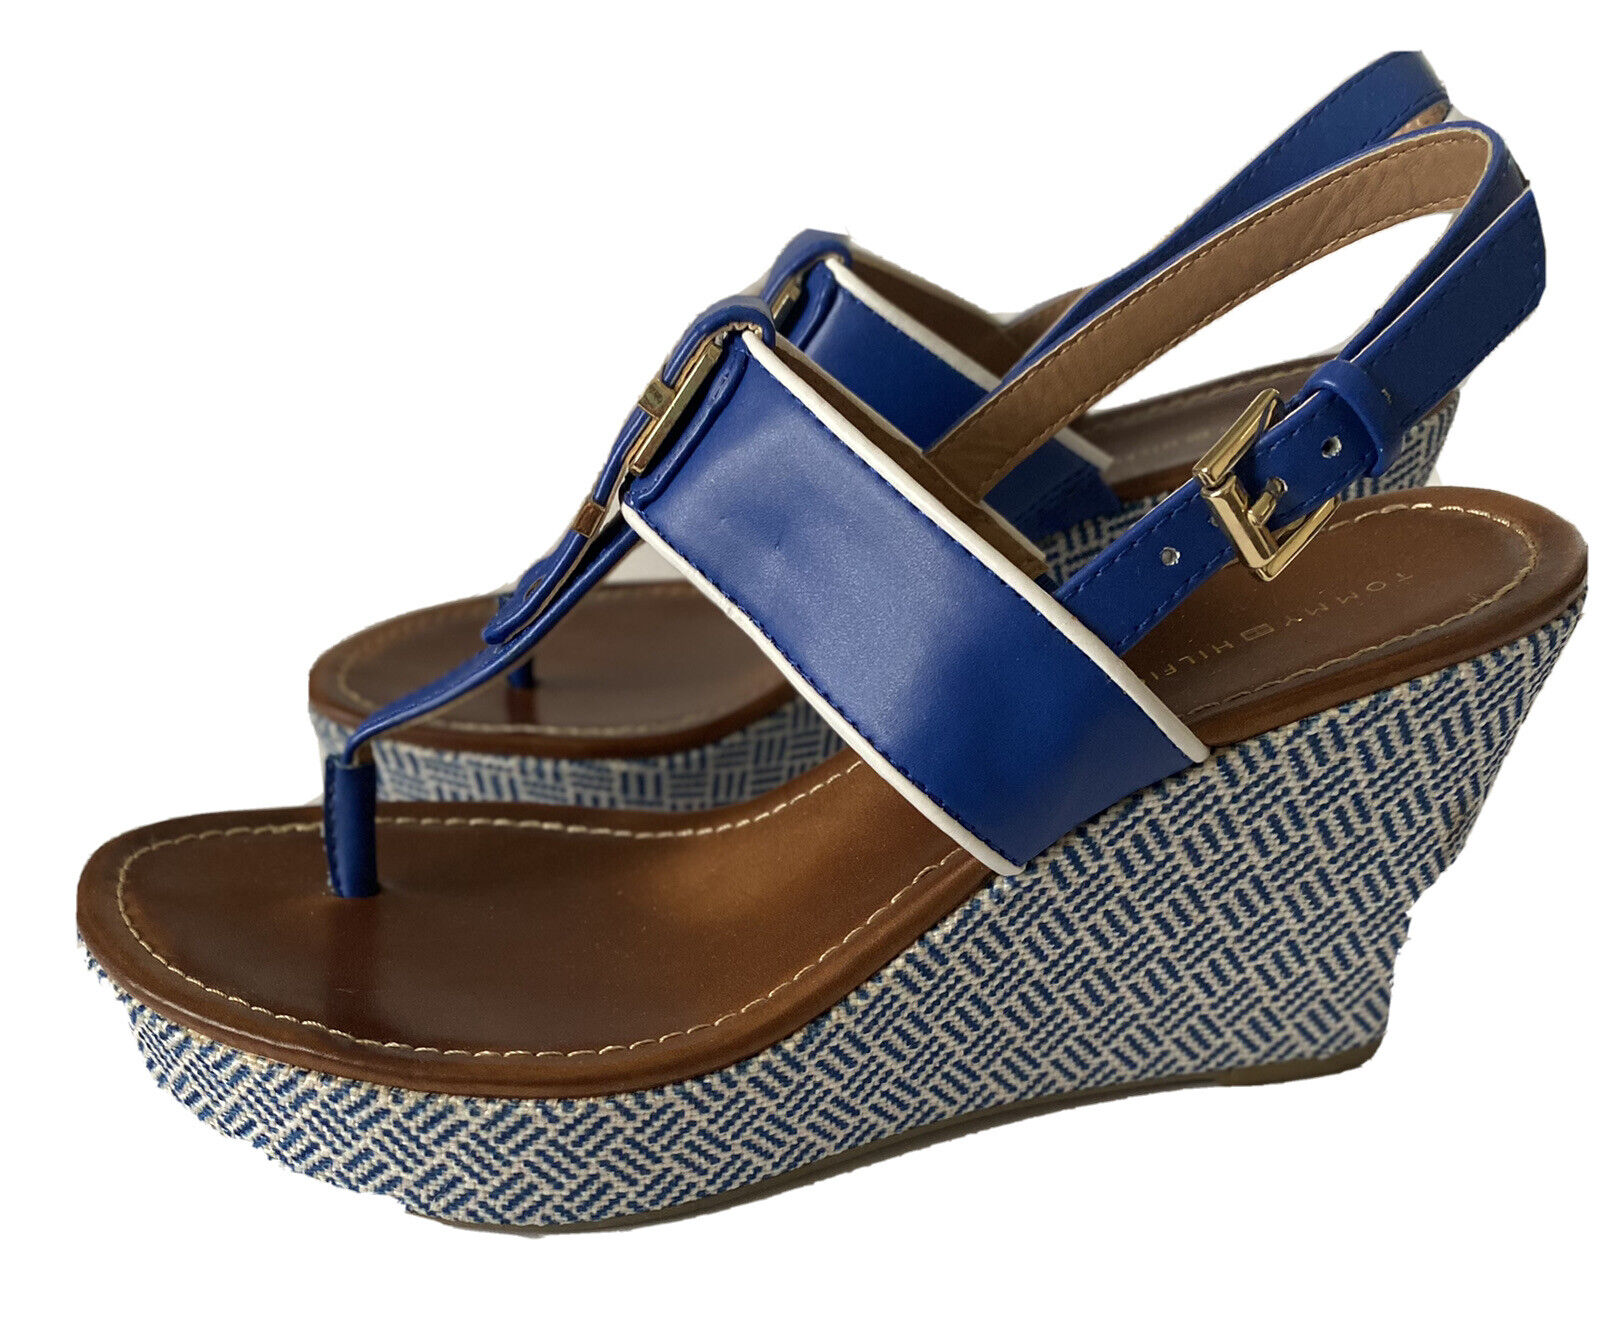 Tommy Hilfiger Women's Size 7.5 M Wedges Navy, - image 7